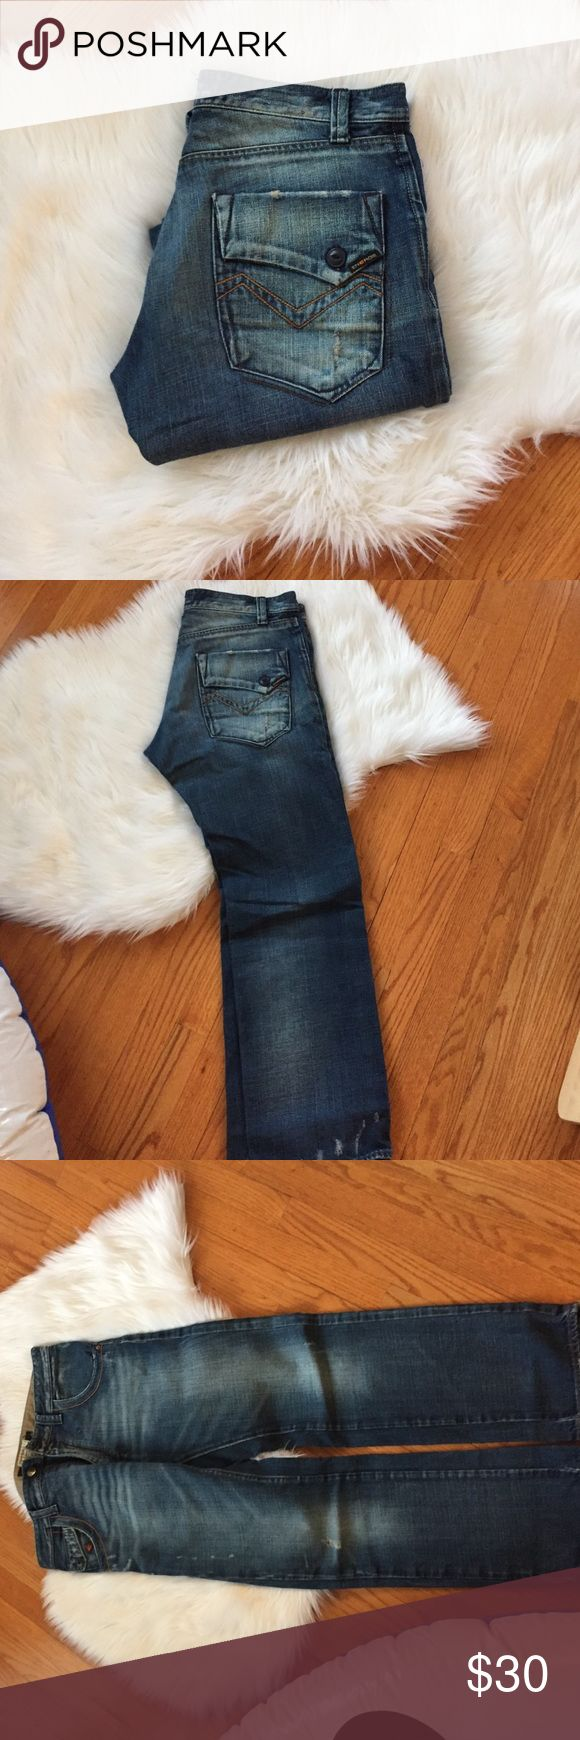 33R Men's Energie Jeans Great condition Energie Jeans Relaxed